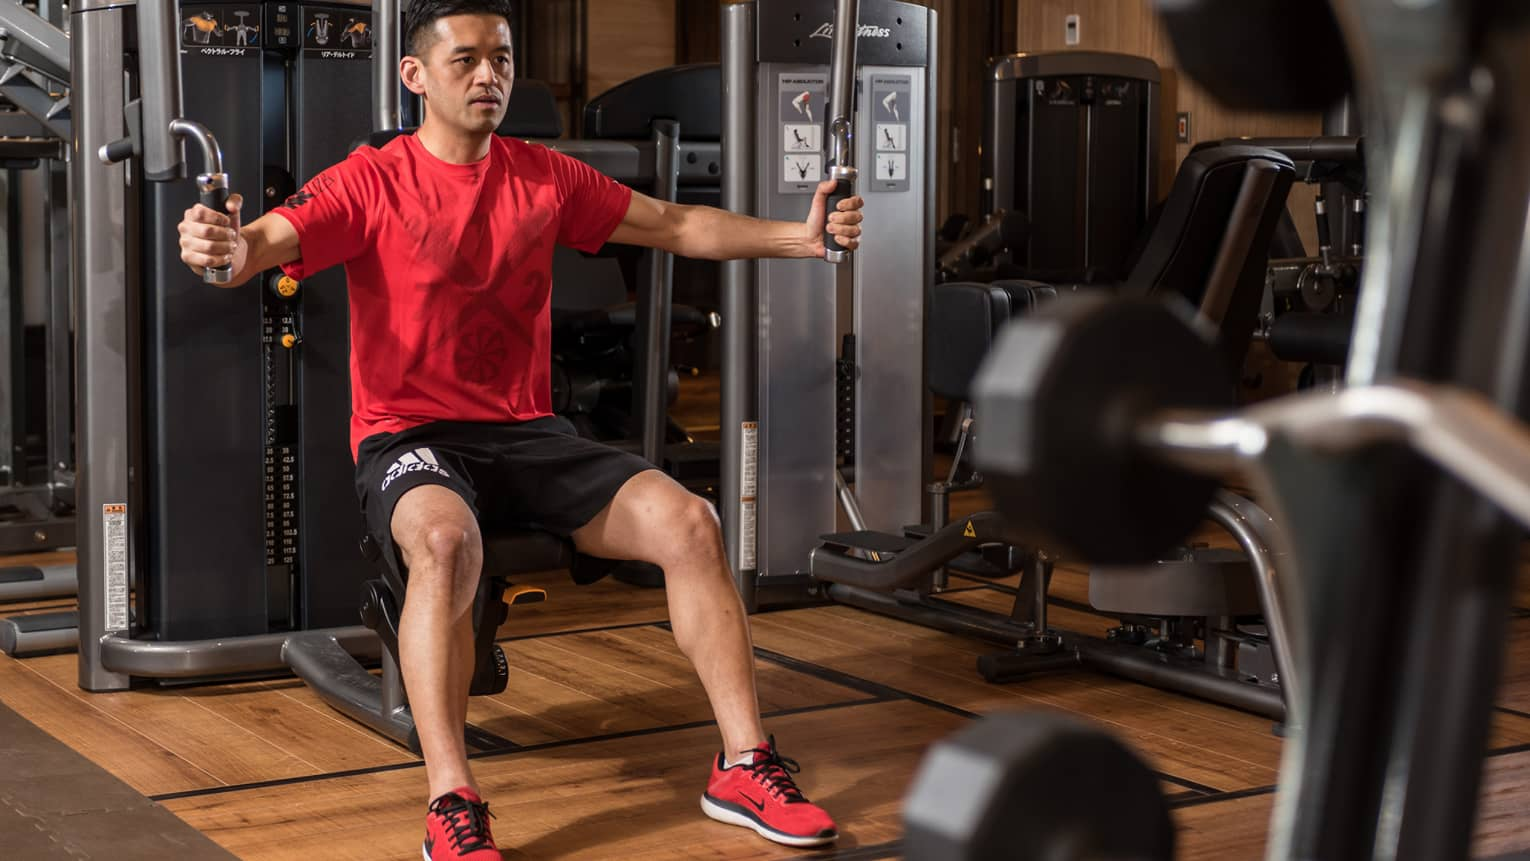 Man in red shirt sits on bench, prepares to pull weights in Fitness Centre